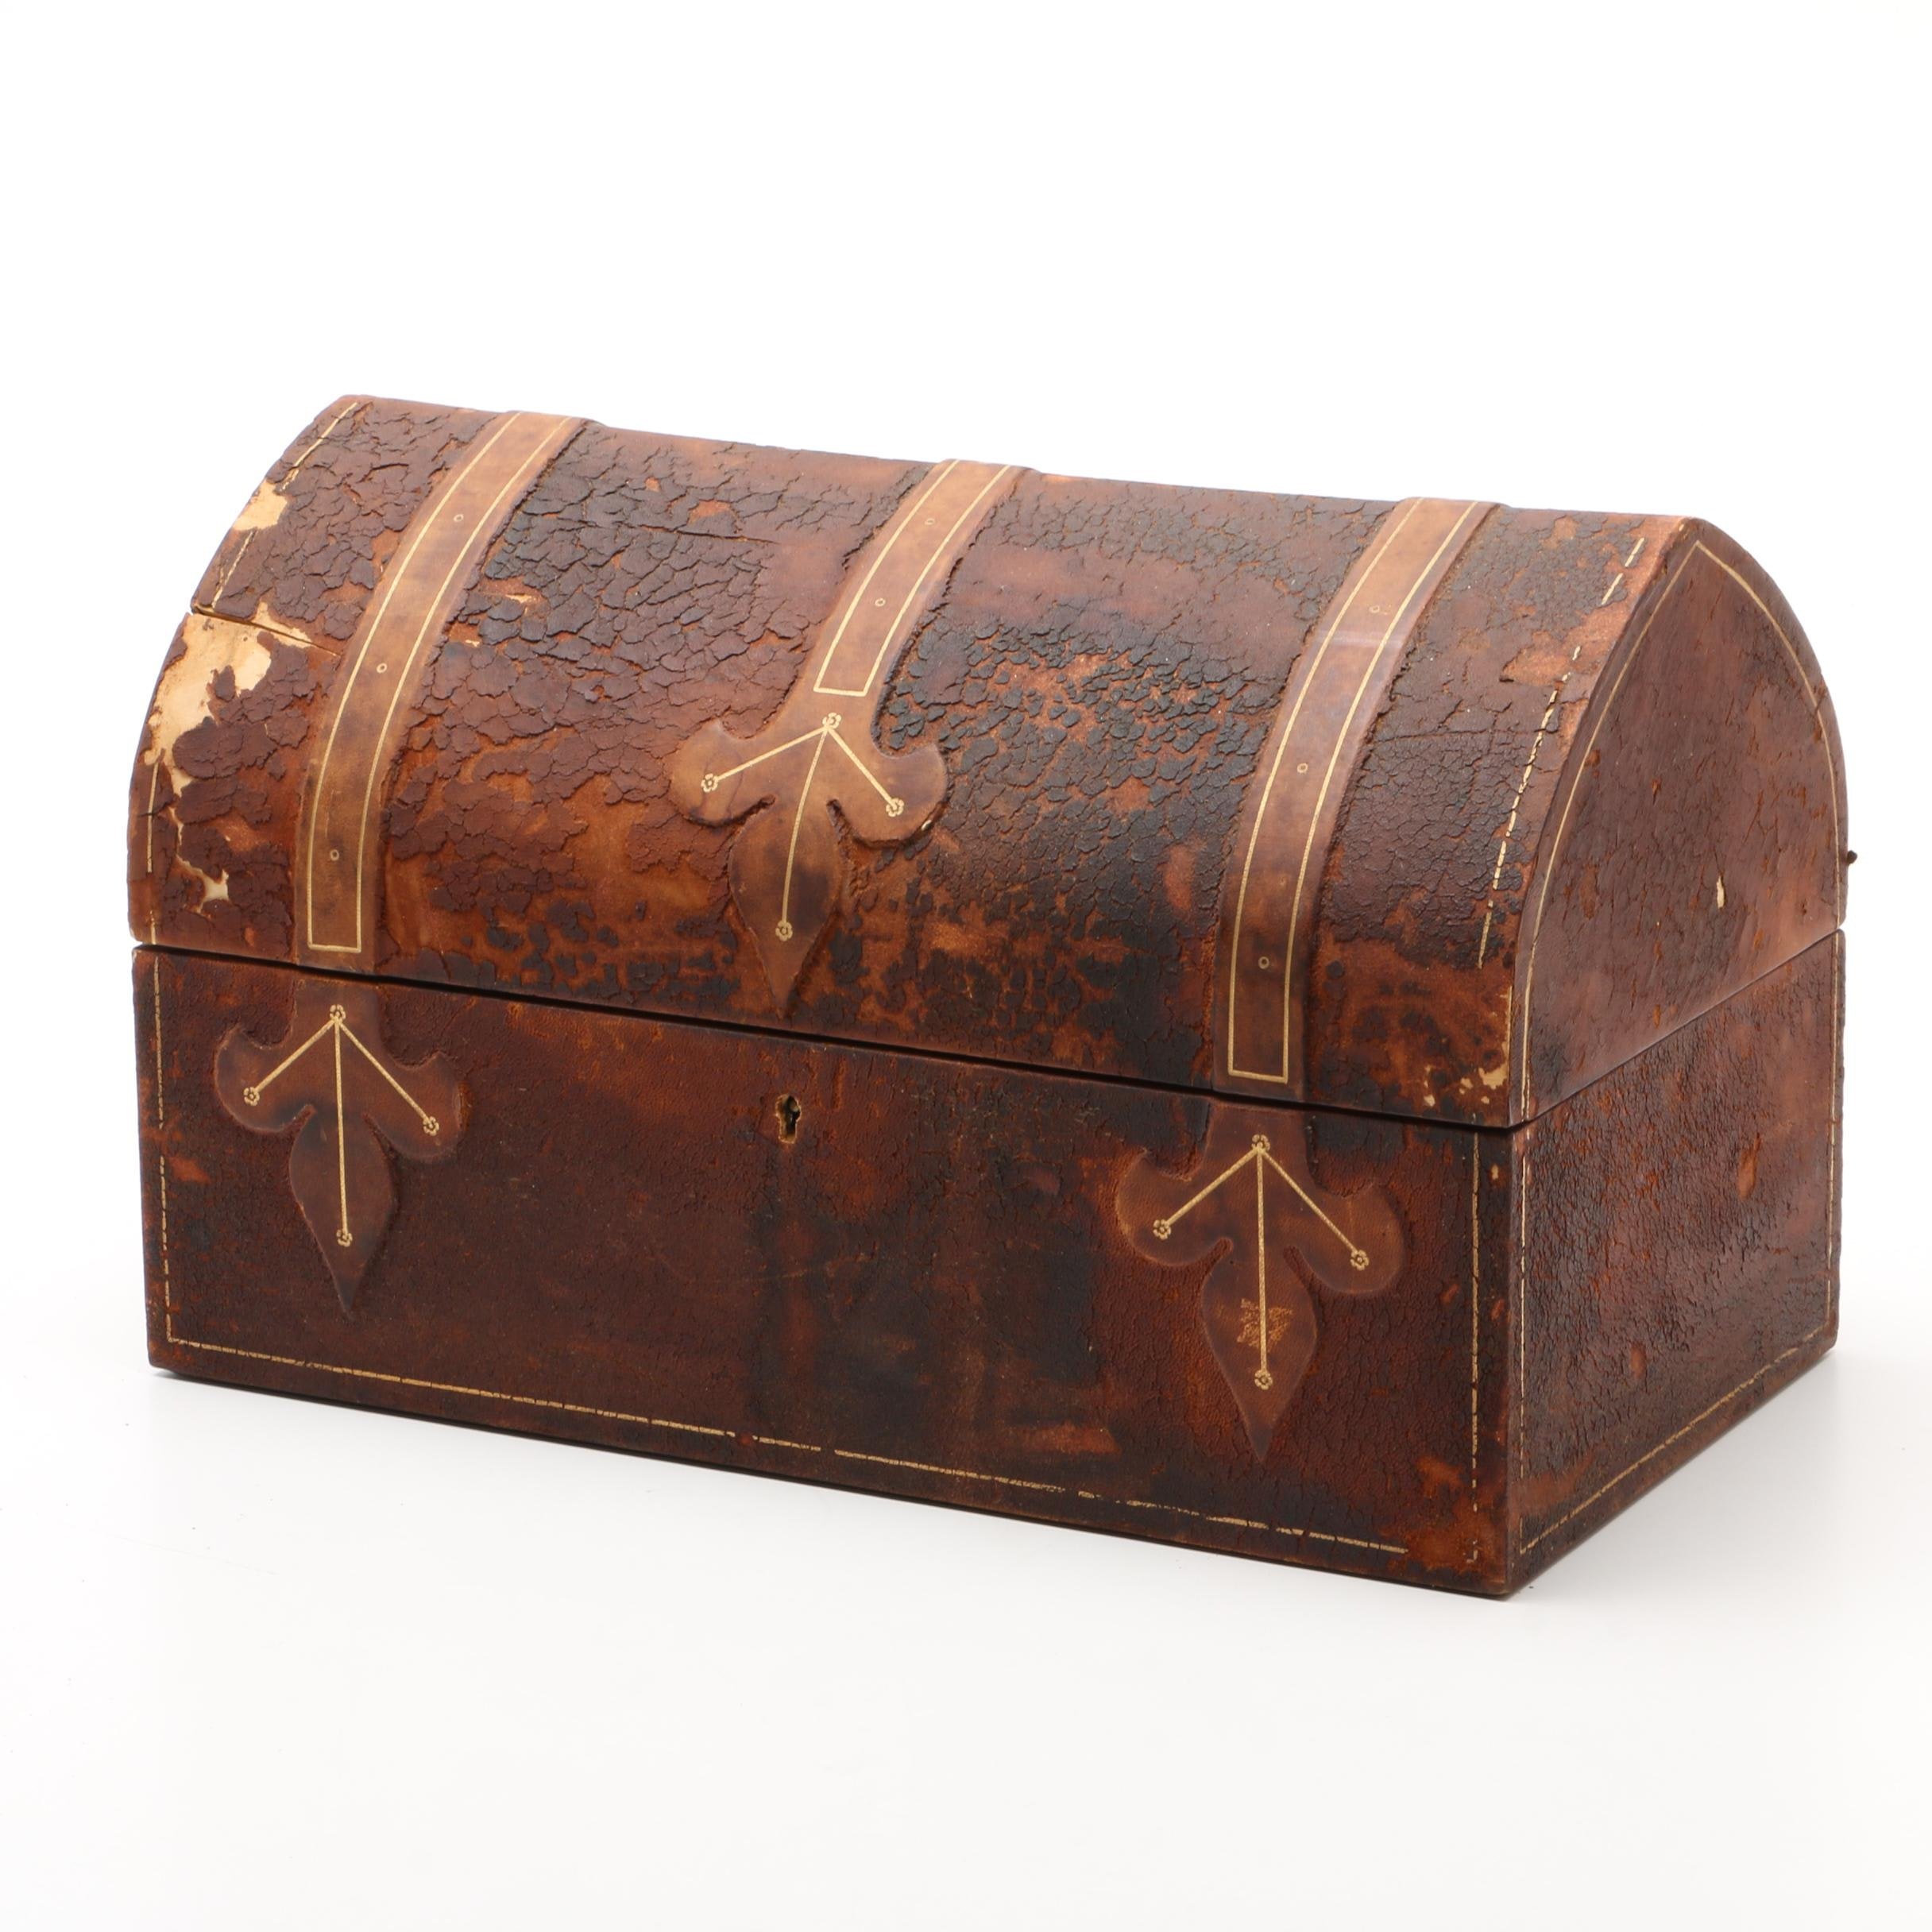 Italian Gilt Tooled Leather Domed Jewelry Casket, 20th Century